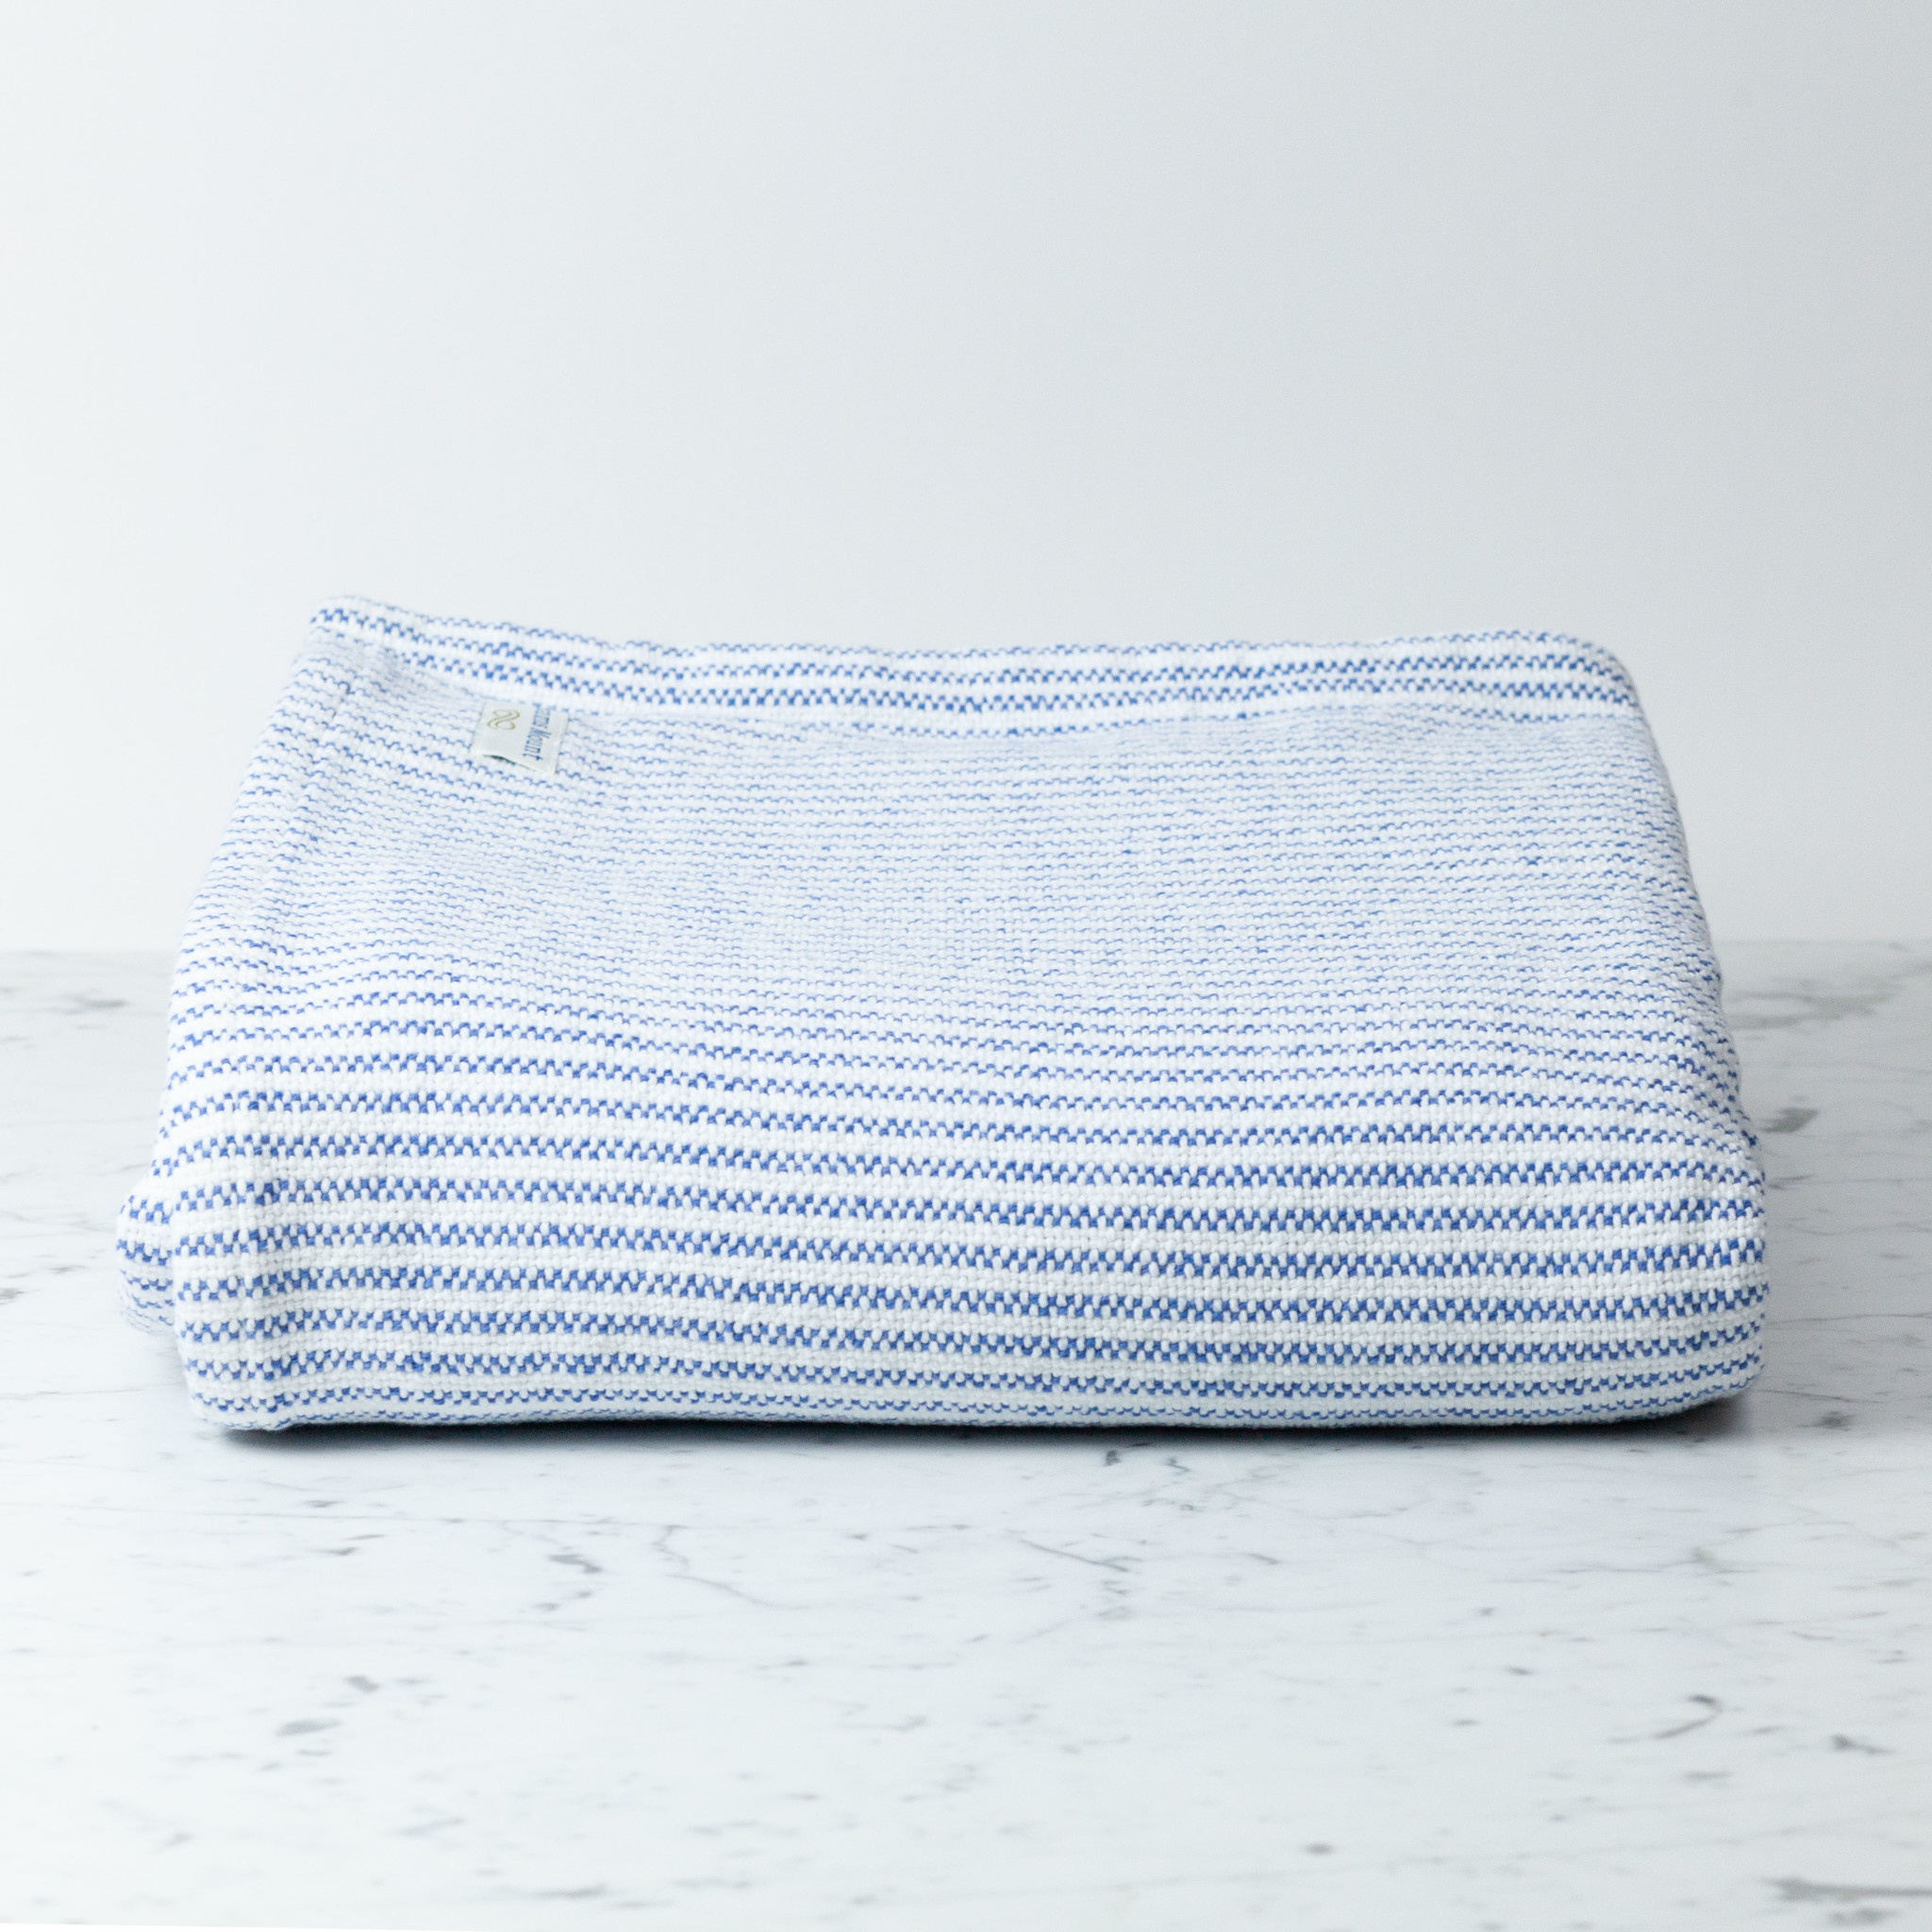 Brahms Mount Winslow Cotton Queen Blanket - Baja Blue + White - 90 x 90""